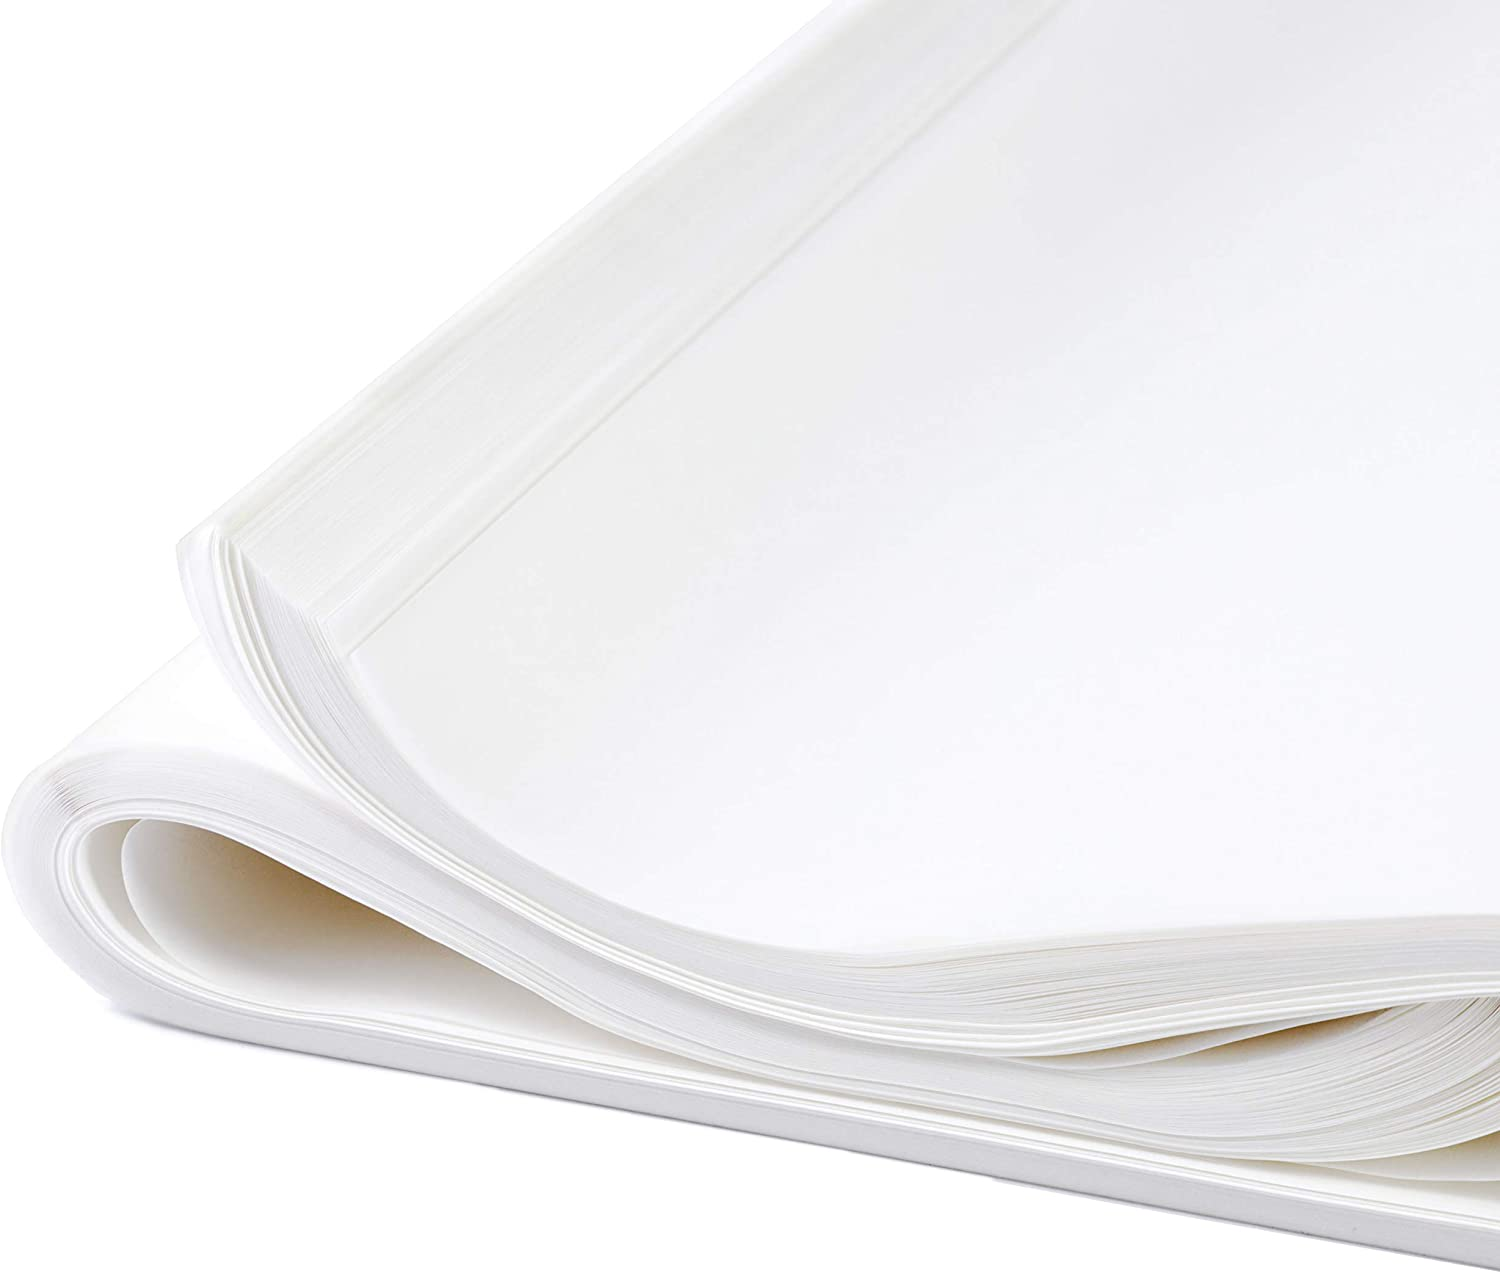 Glassine Paper Sheets for Artwork (16 x 20 in, 100 Pack)